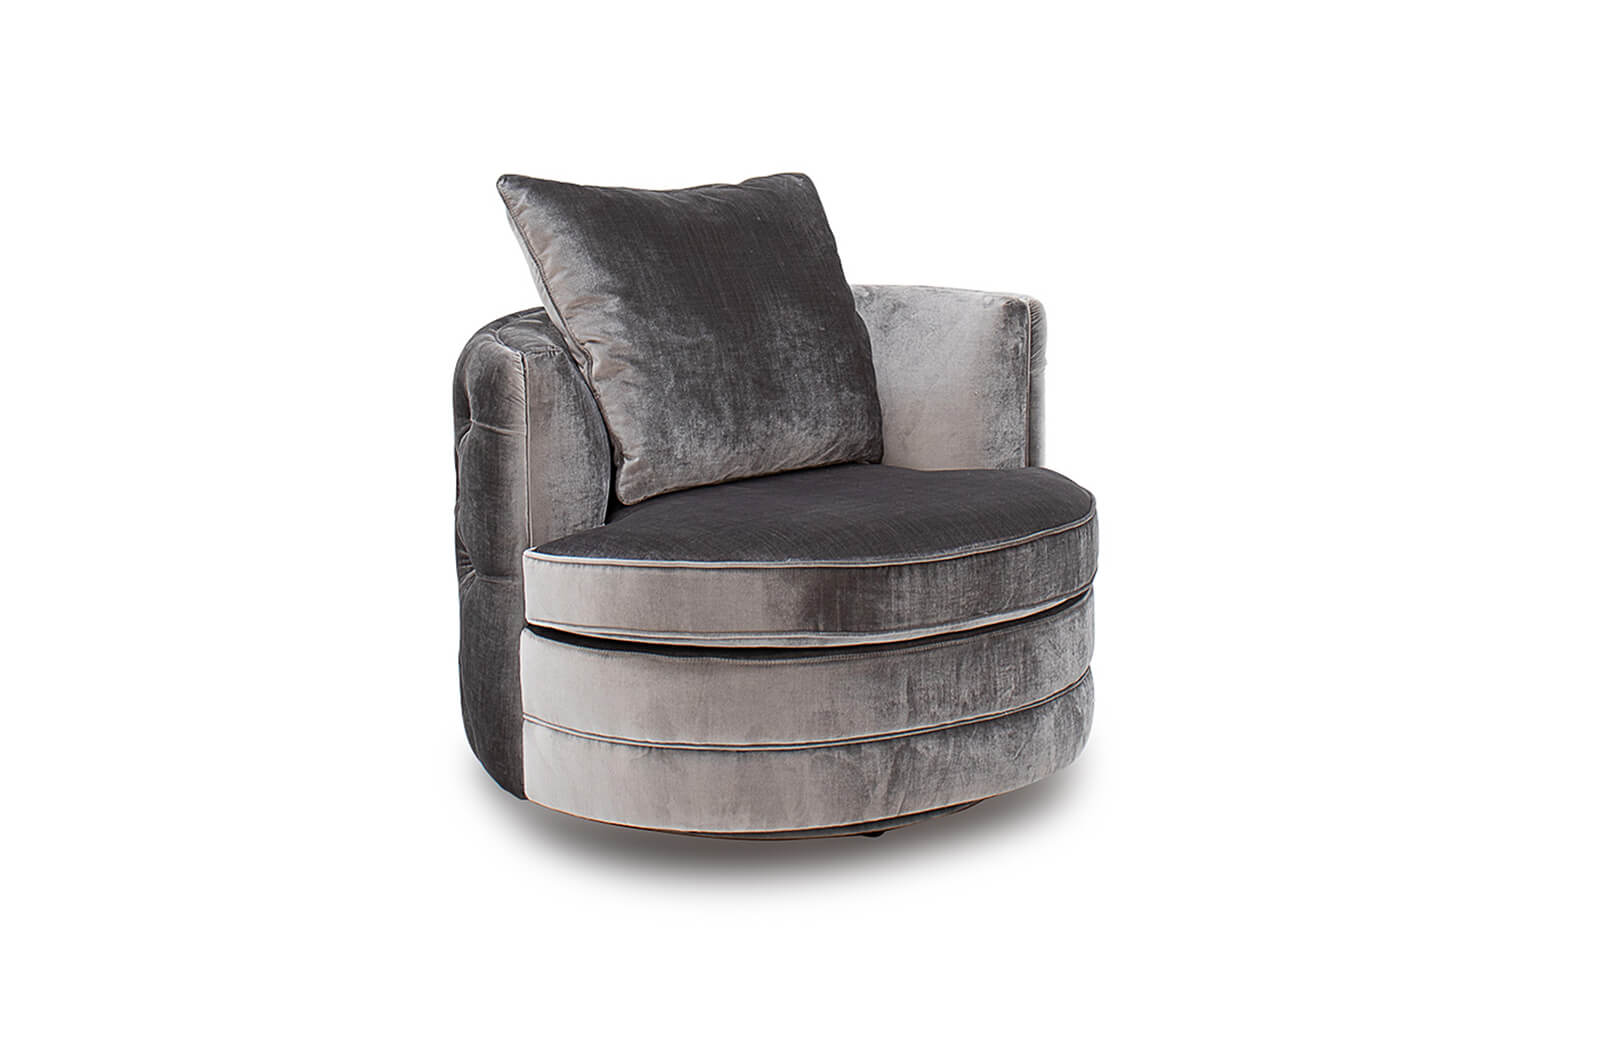 Nicolette Swivel Chair